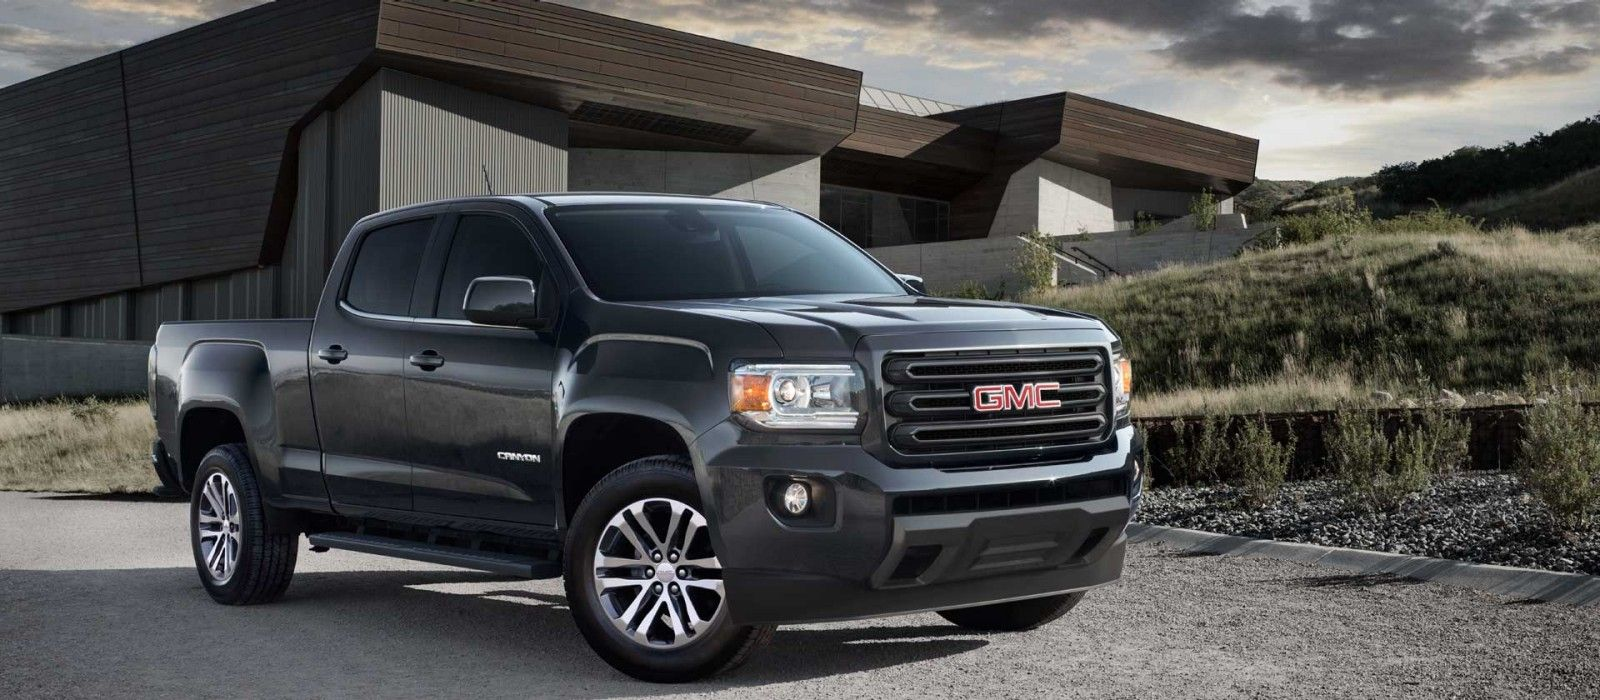 Only 1 Gorgeous New 2015 Gmc Canyon 4wd Auto Left In Stock